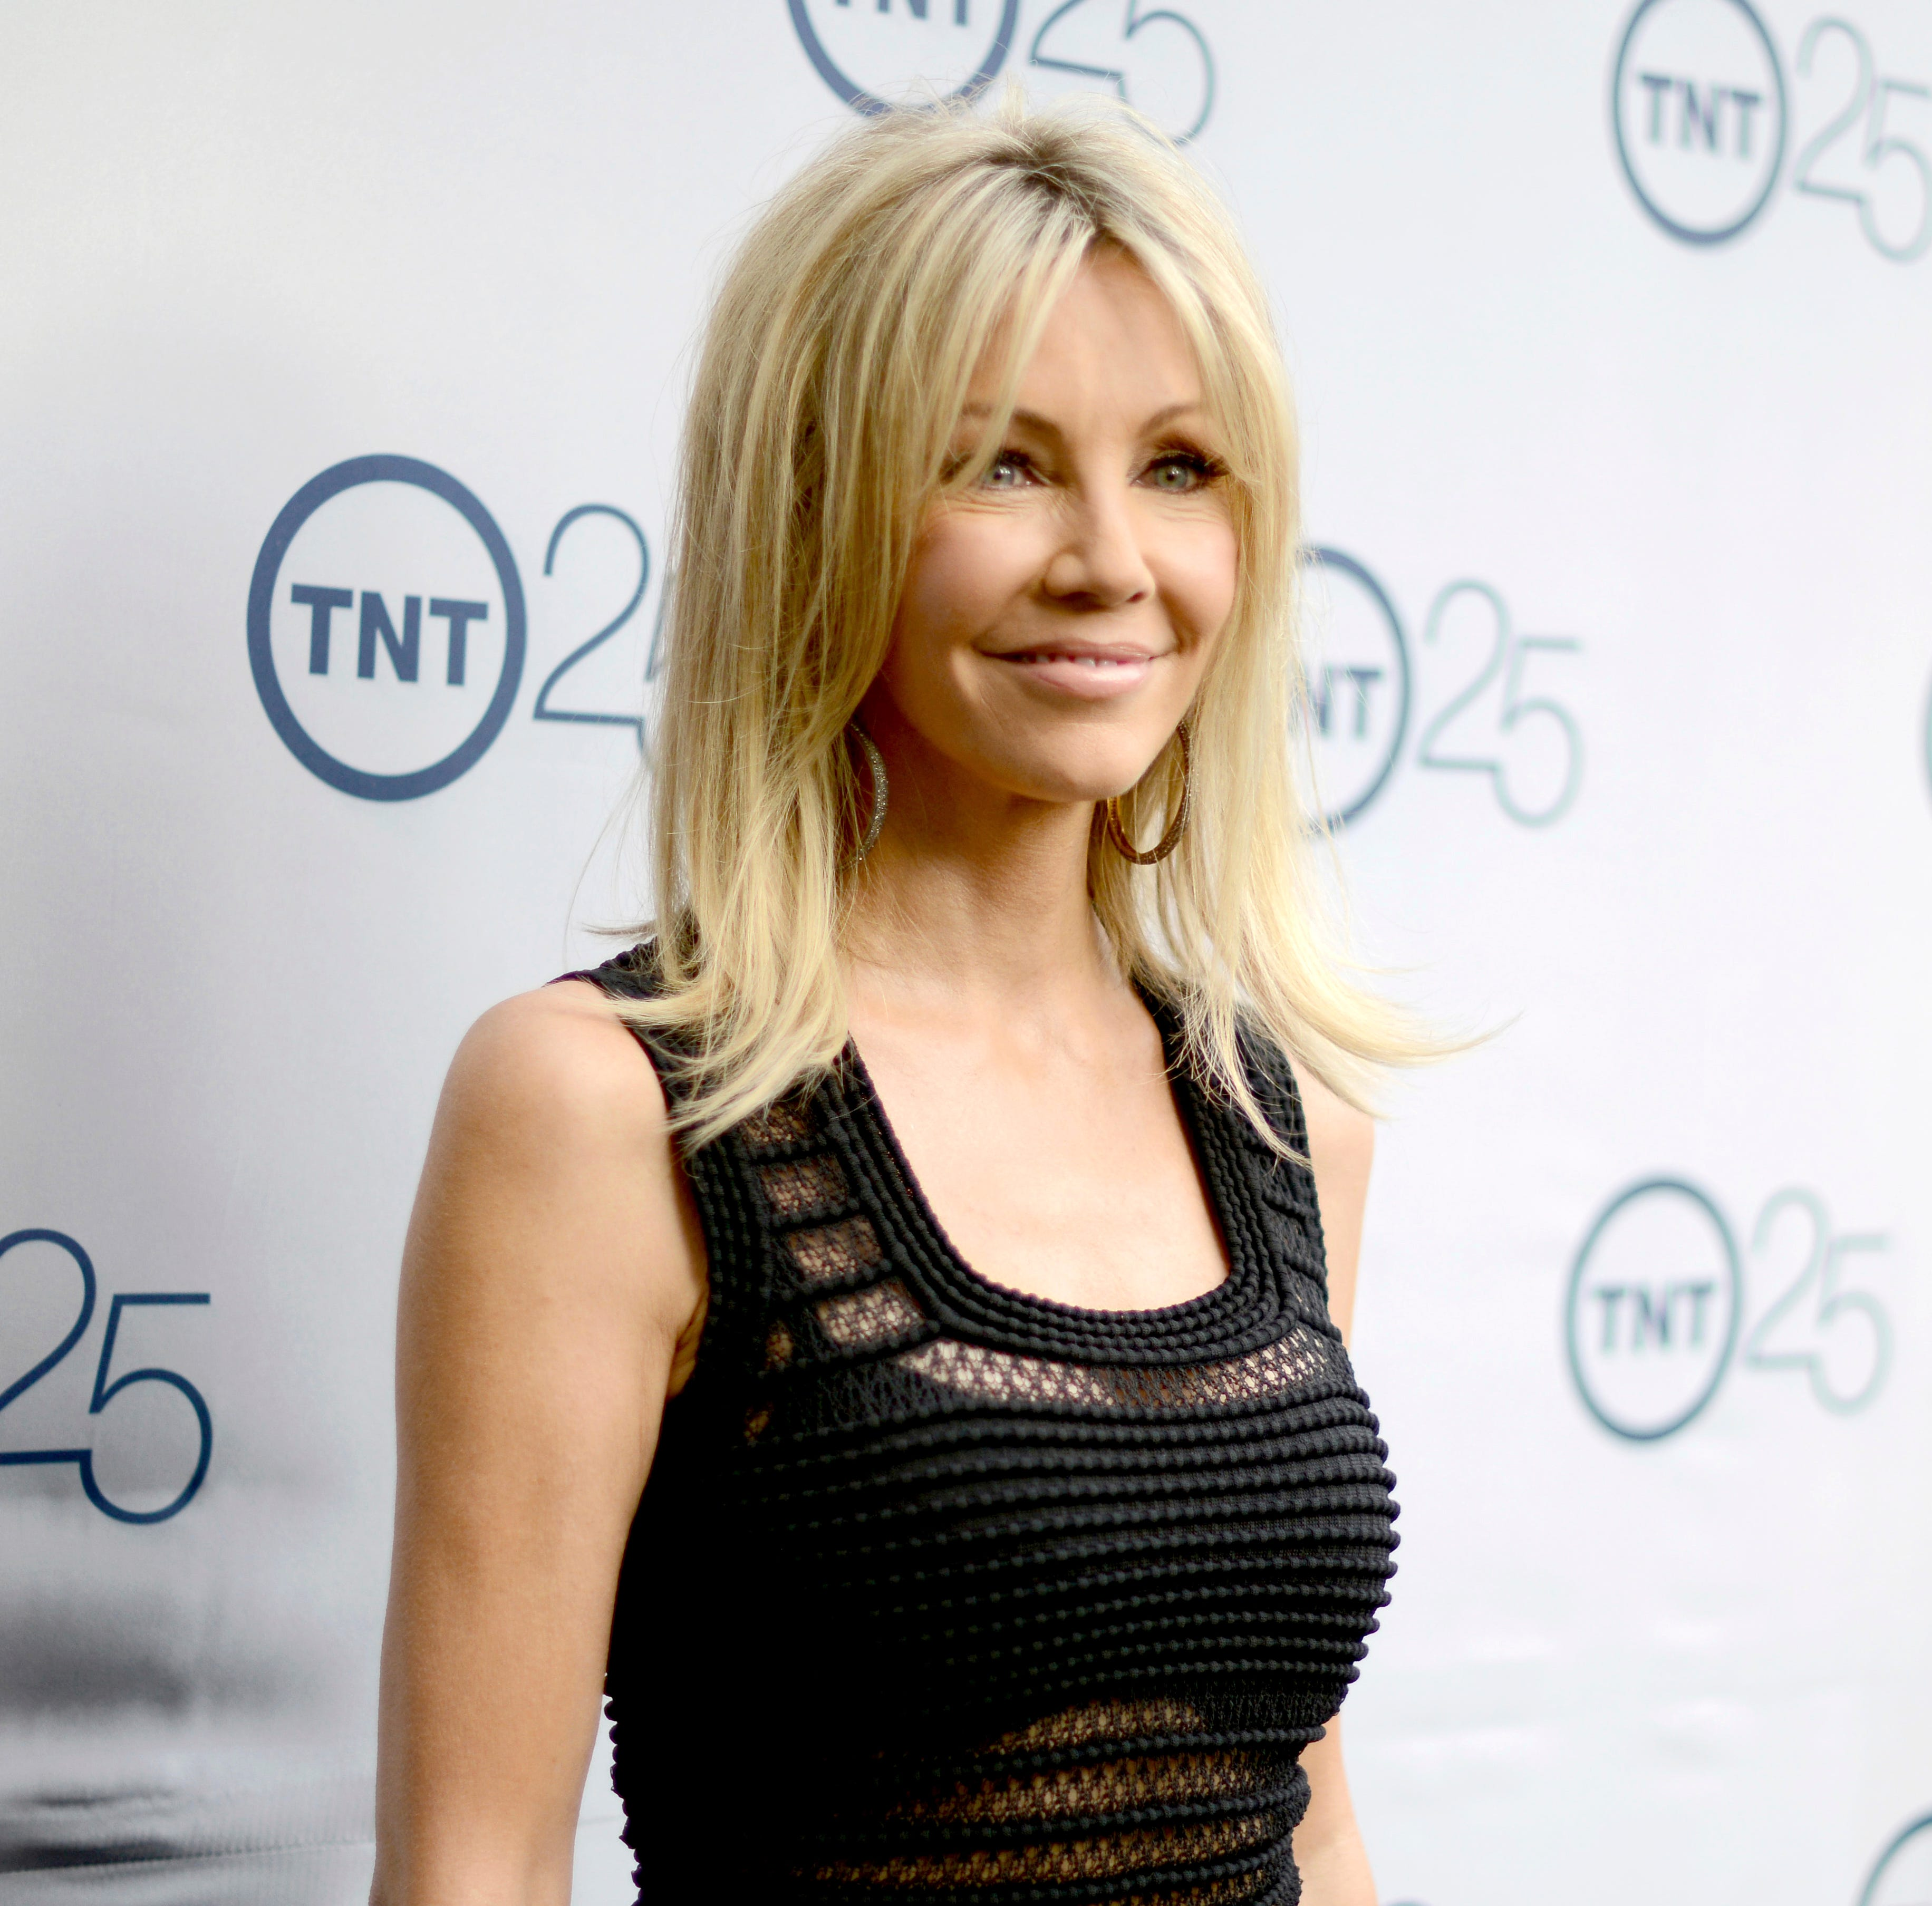 Heather Locklear shares upbeat post on Instagram months after her arrest